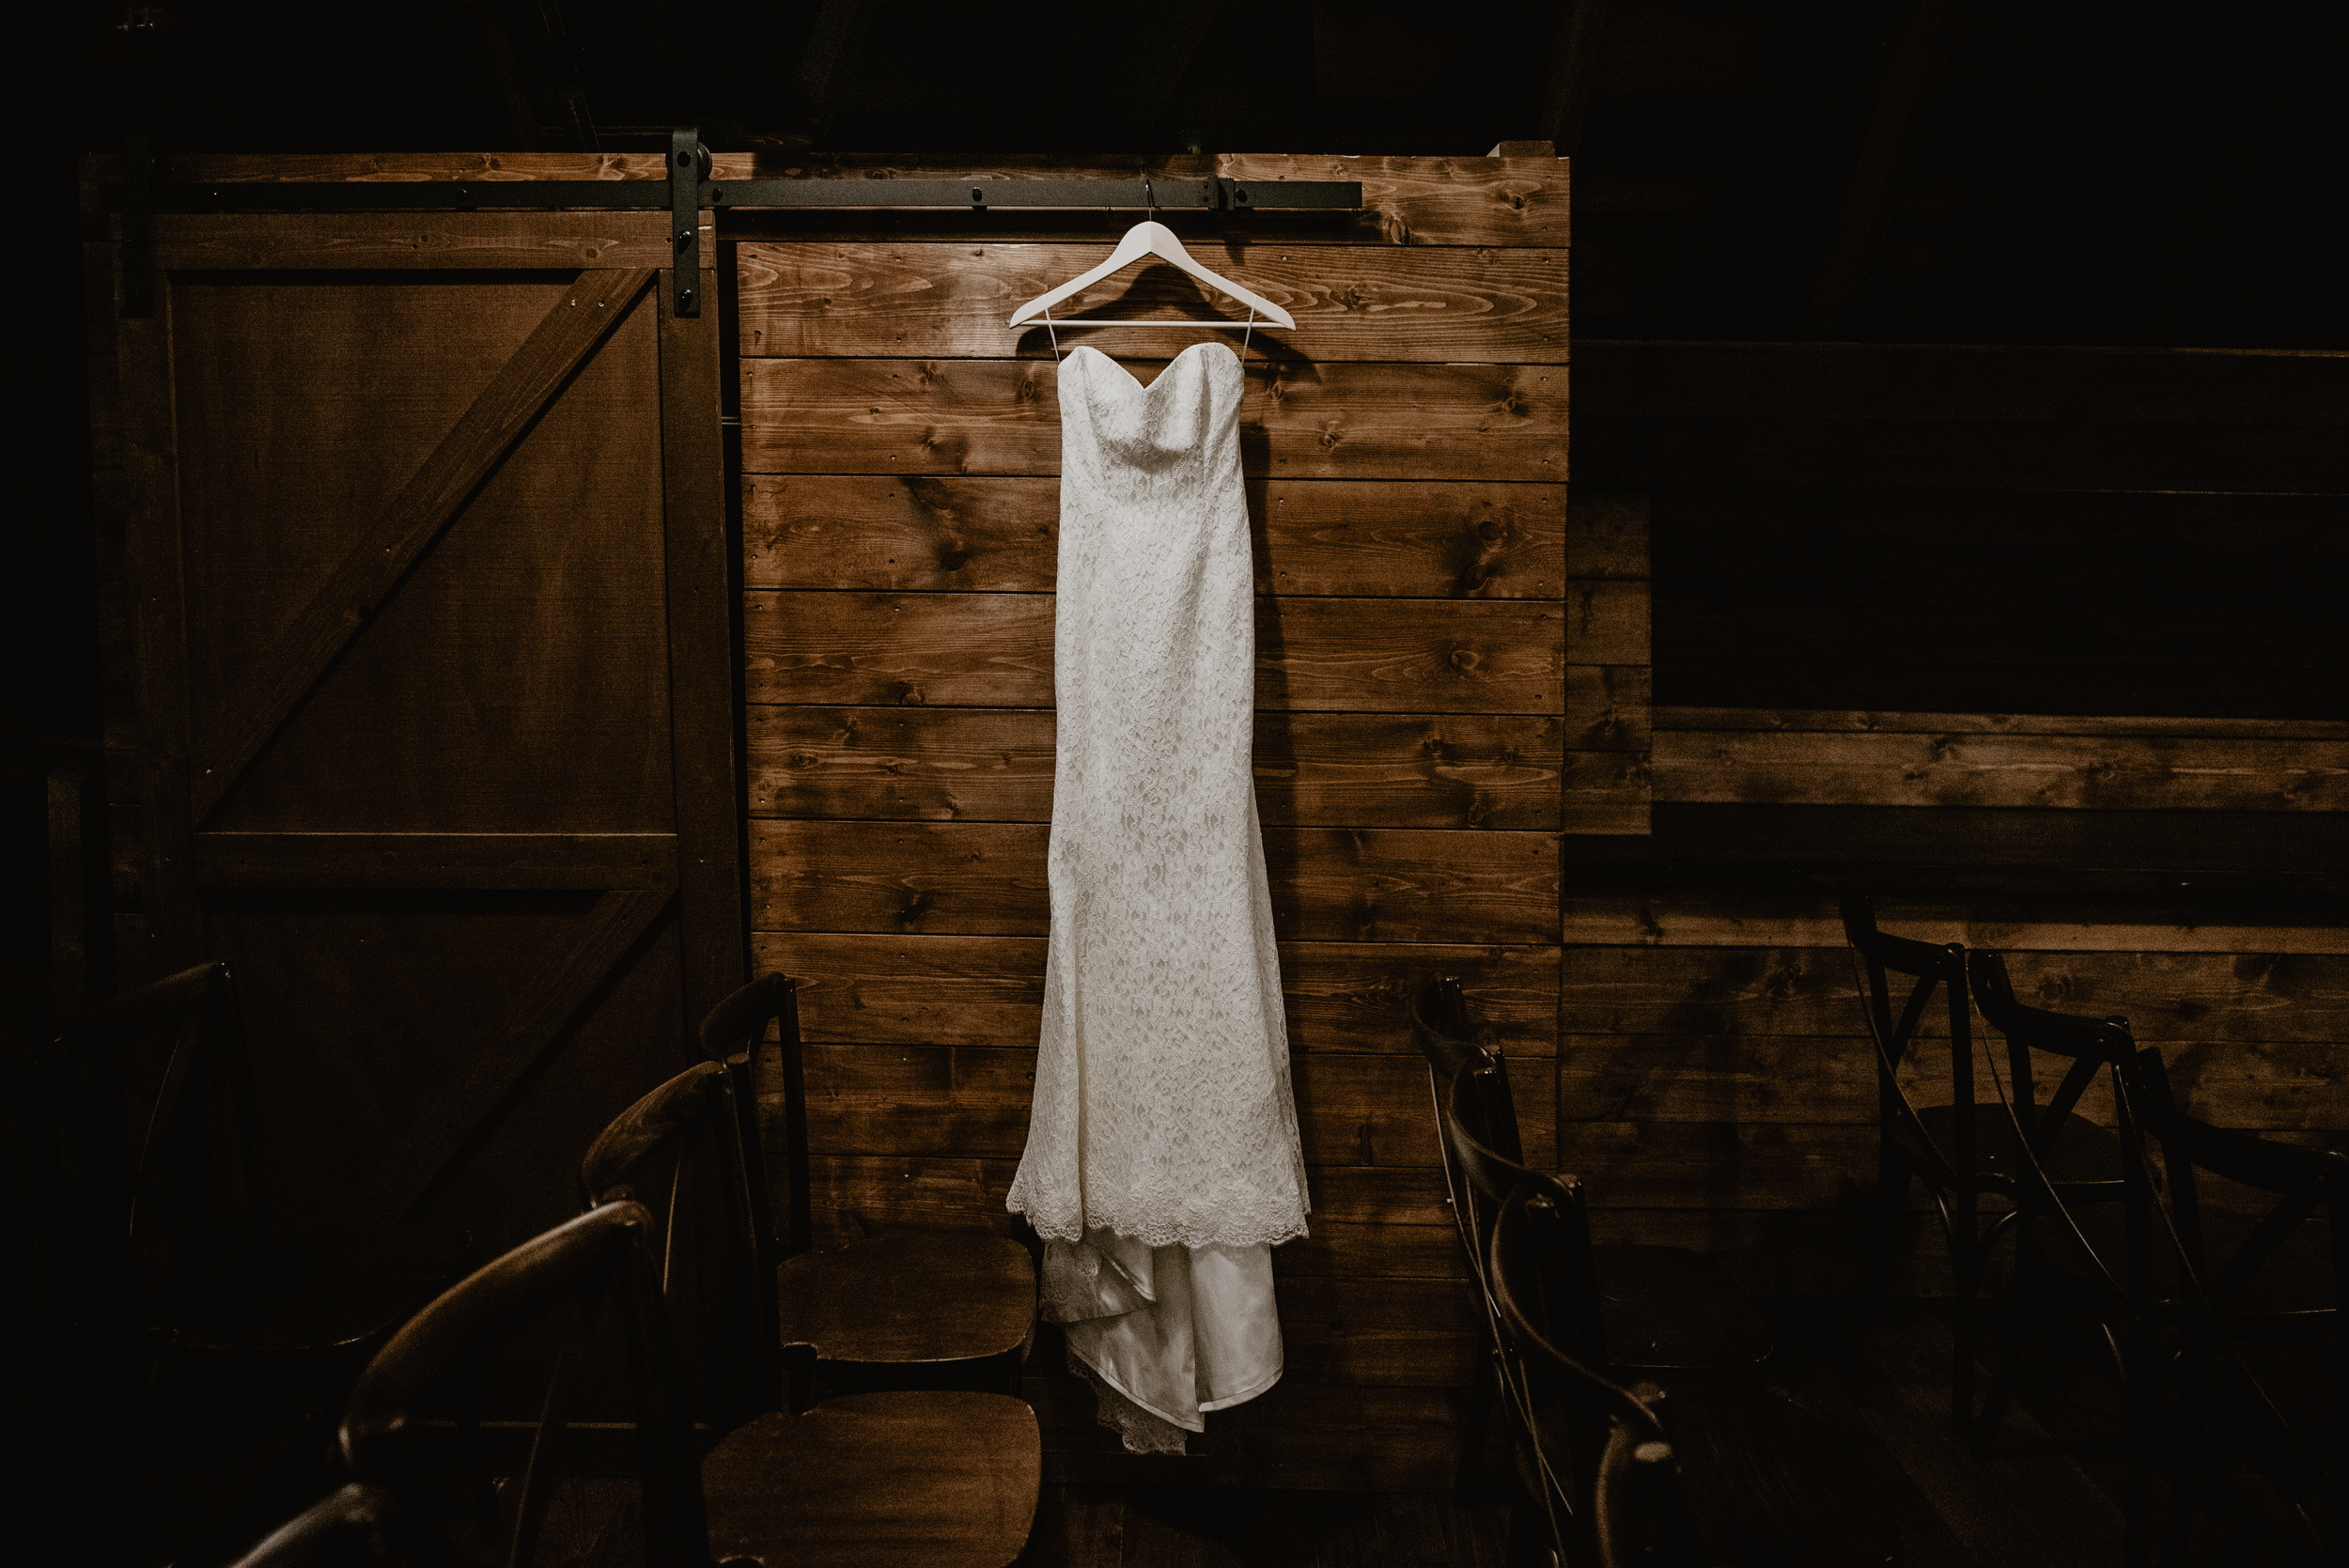 The Barn at the Ackerhurst Dairy Farm Omaha Nebraska Wedding Kaylie Sirek Photography004.jpg